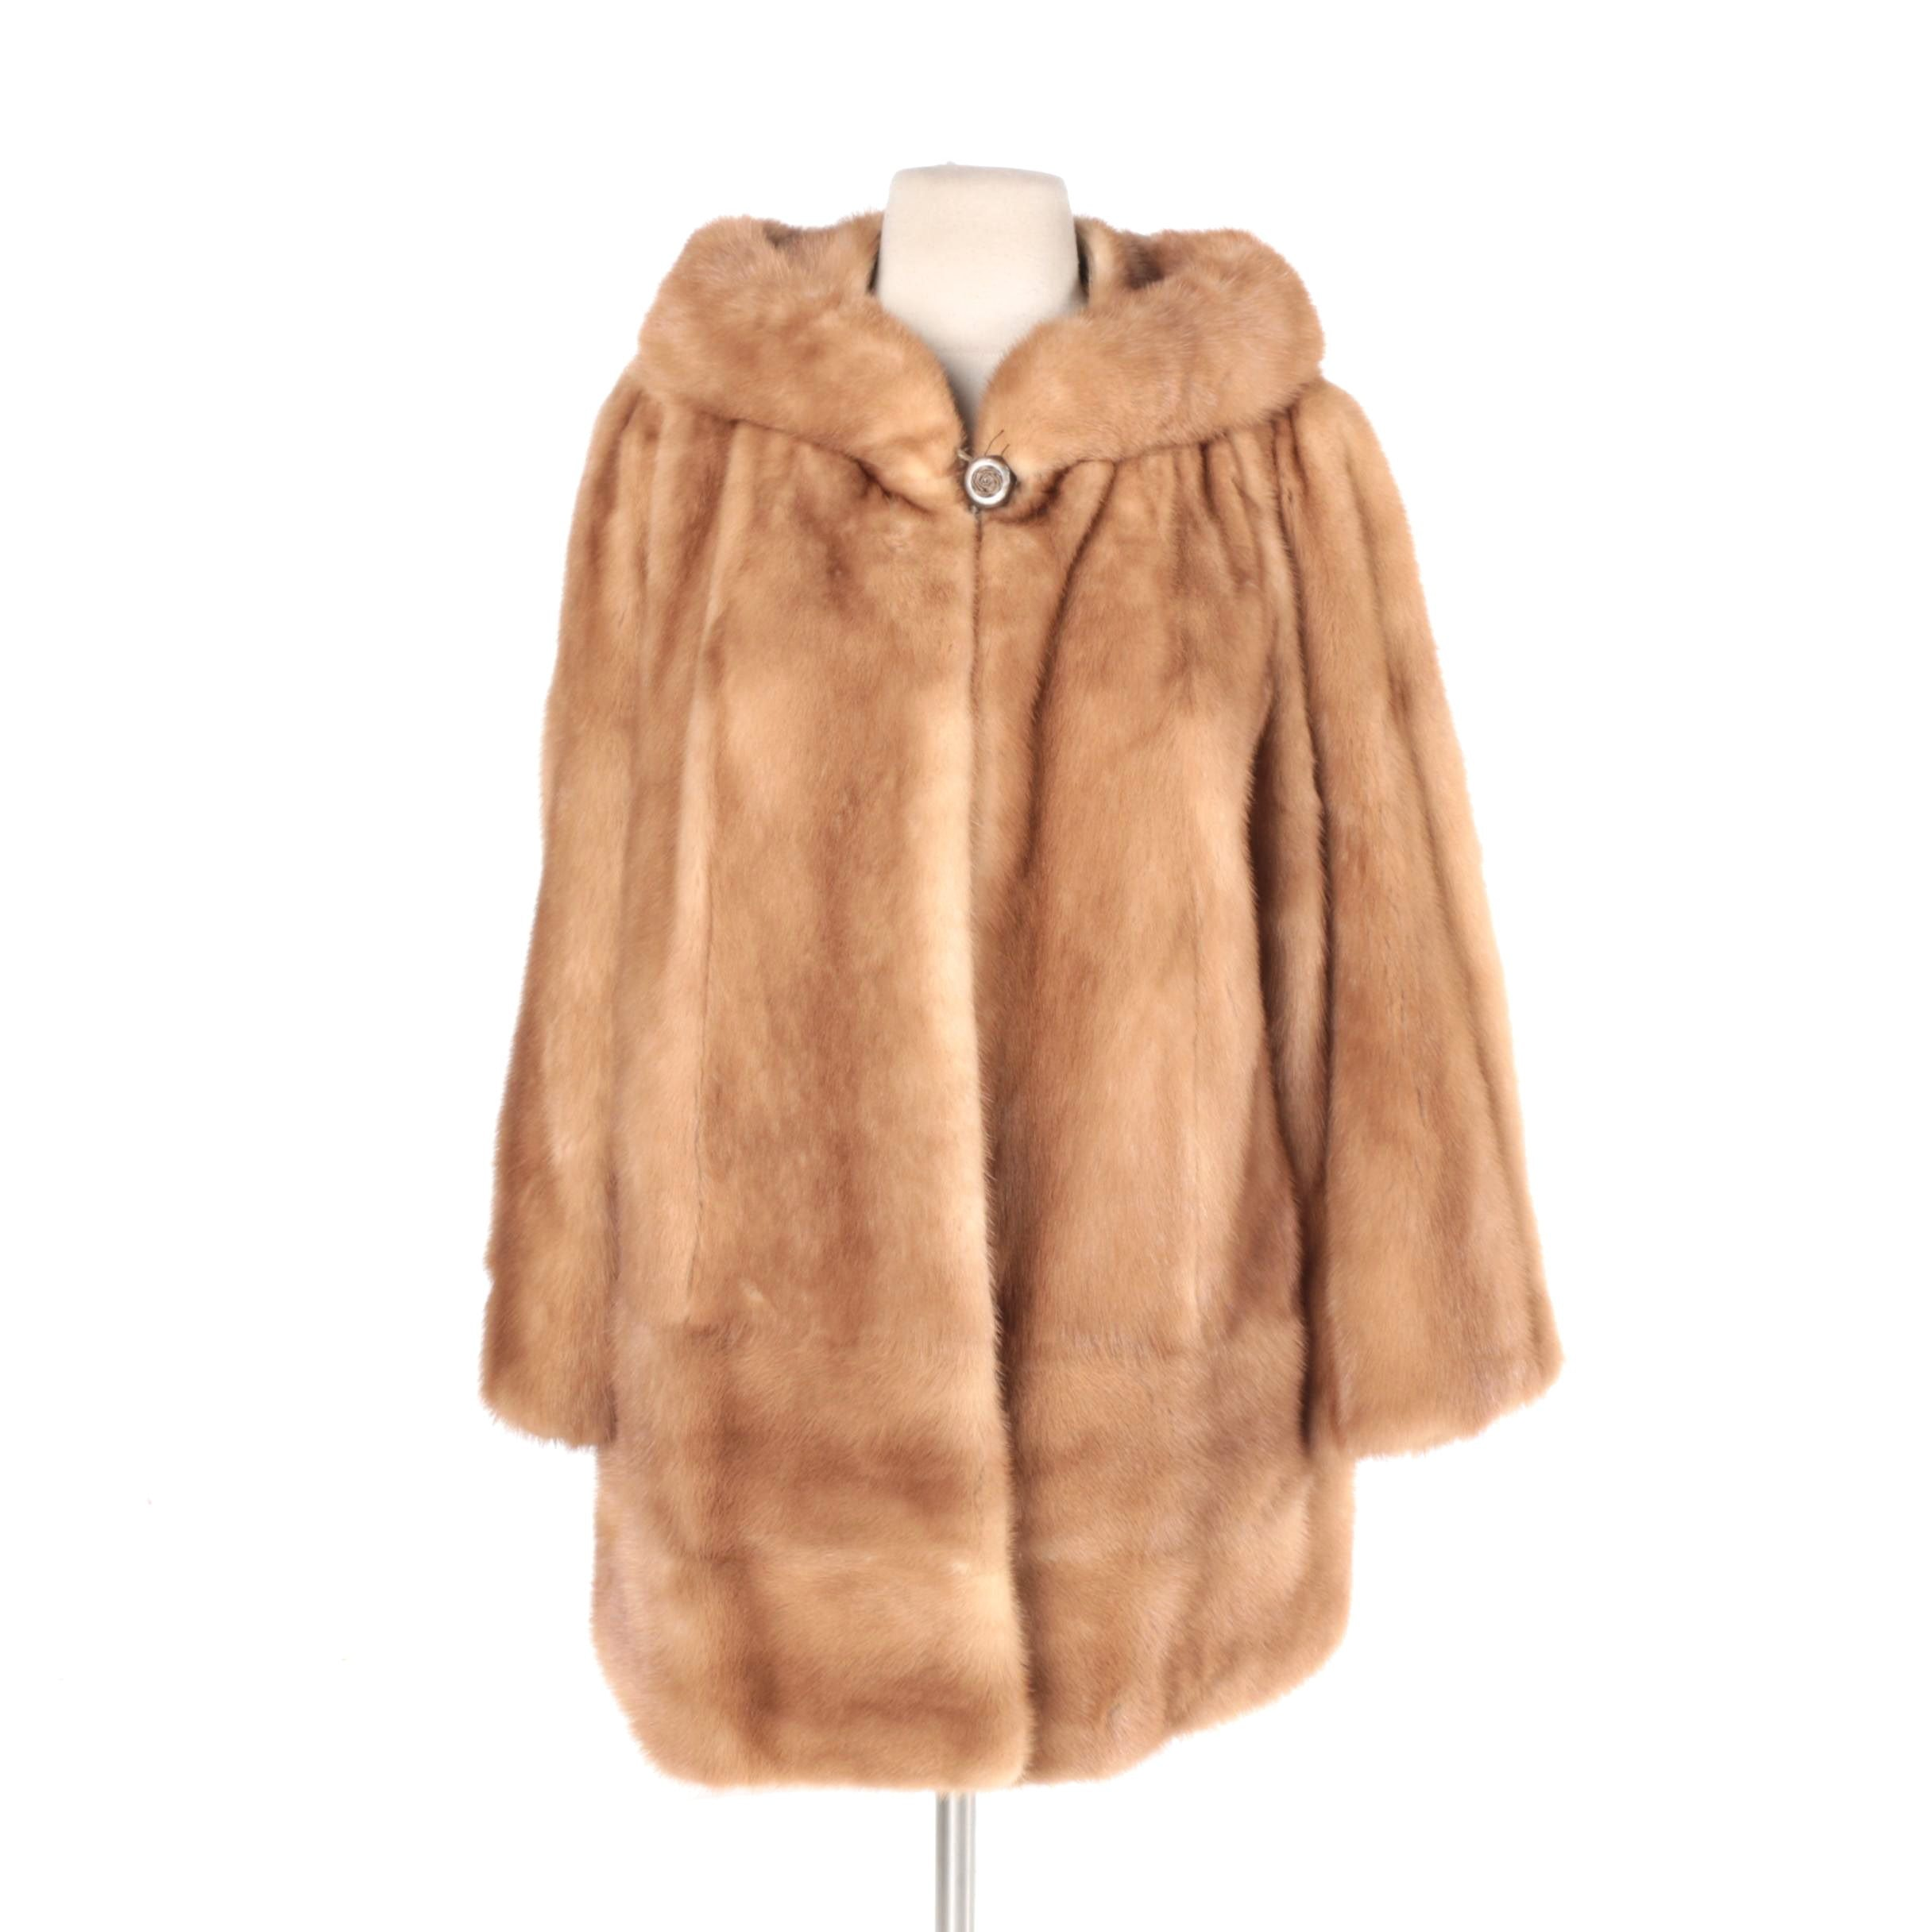 Women's Vintage Light Brown Mink Fur Coat